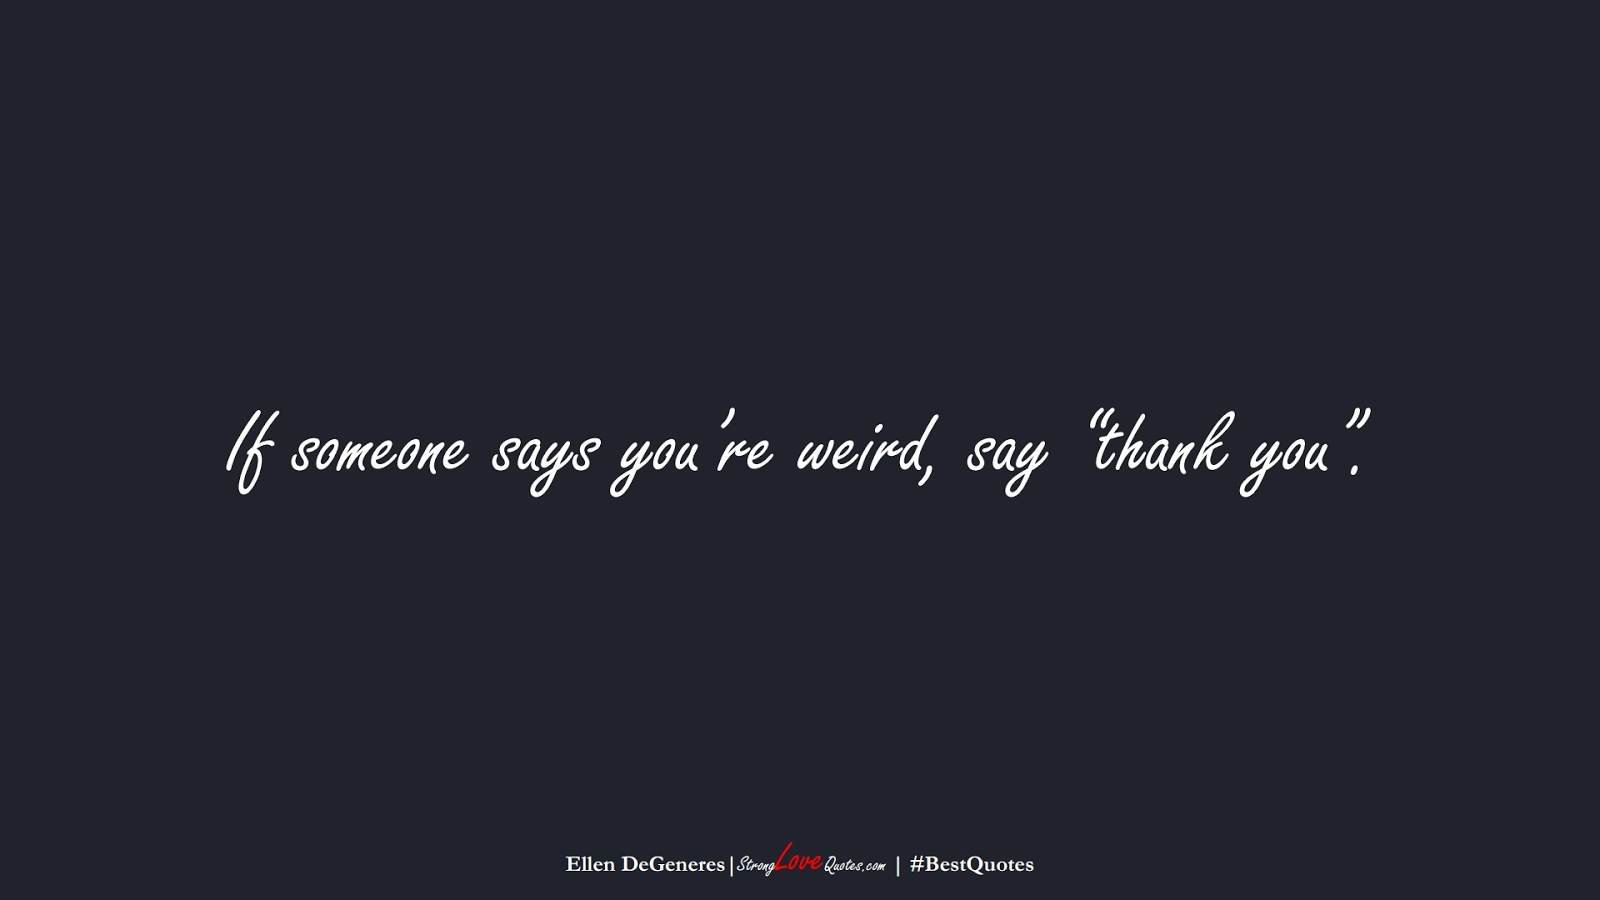 """If someone says you're weird, say """"thank you"""". (Ellen DeGeneres);  #BestQuotes"""